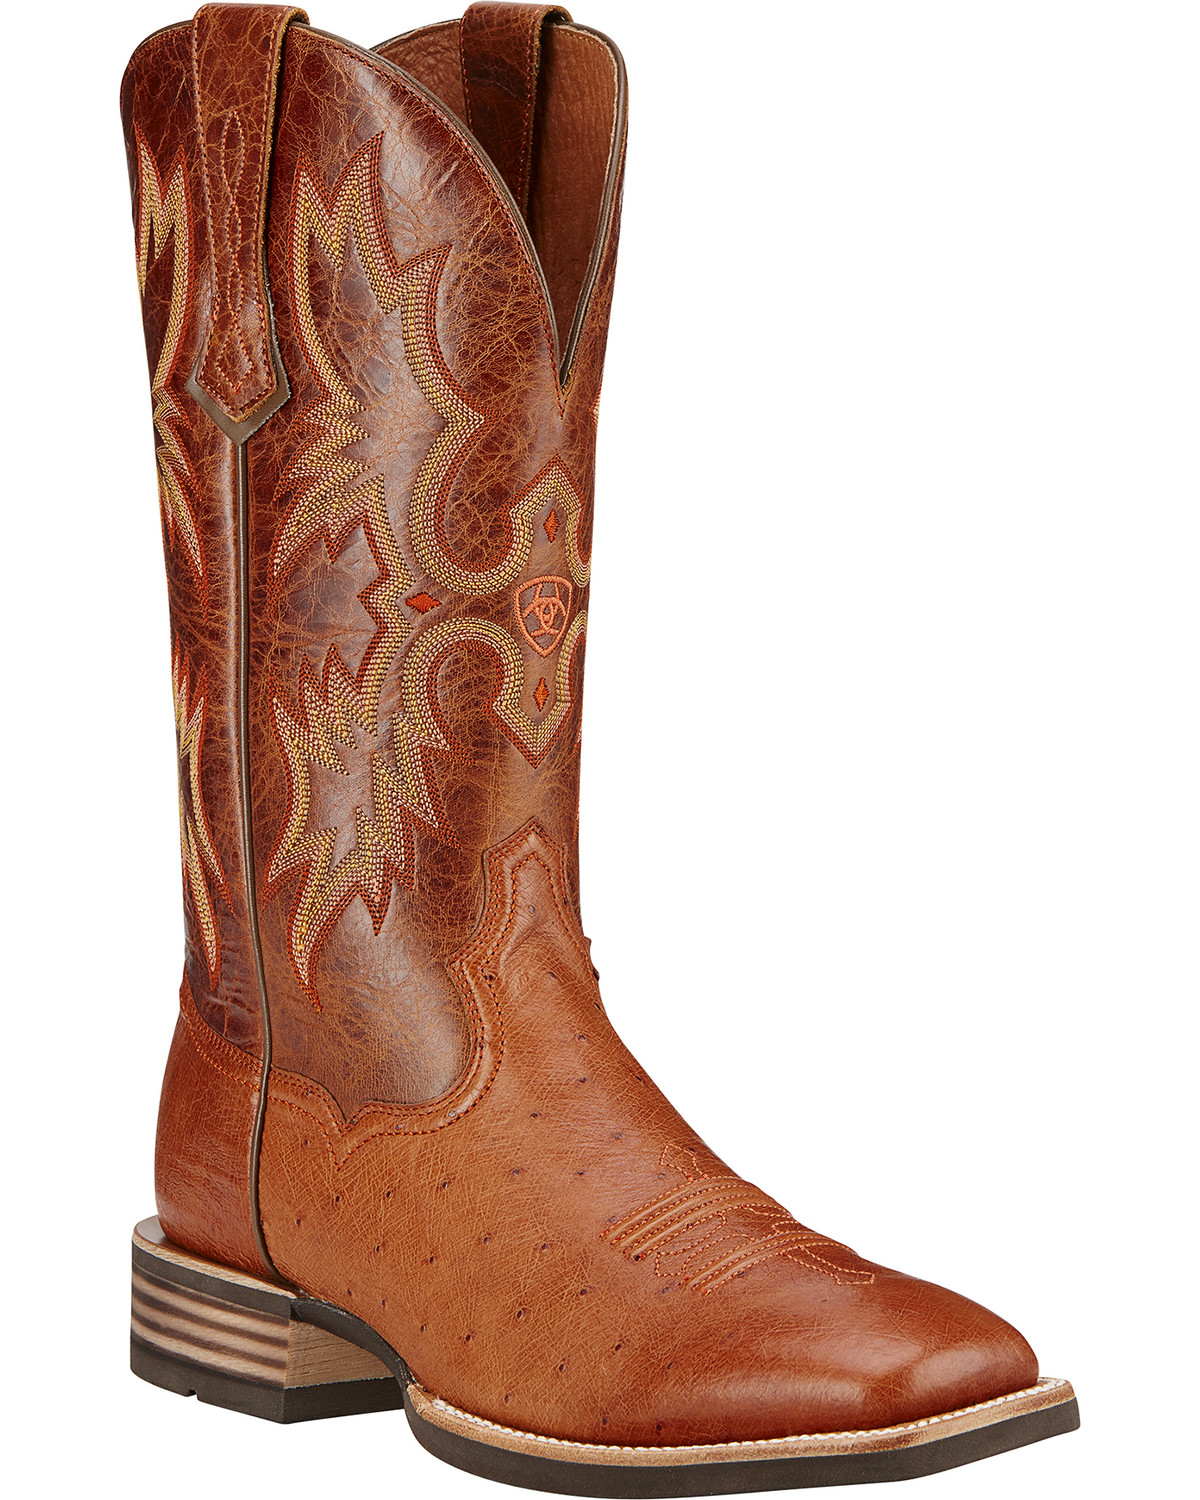 256aa990e07 Ariat Men's Tombstone Smooth Ostrich Western Boots